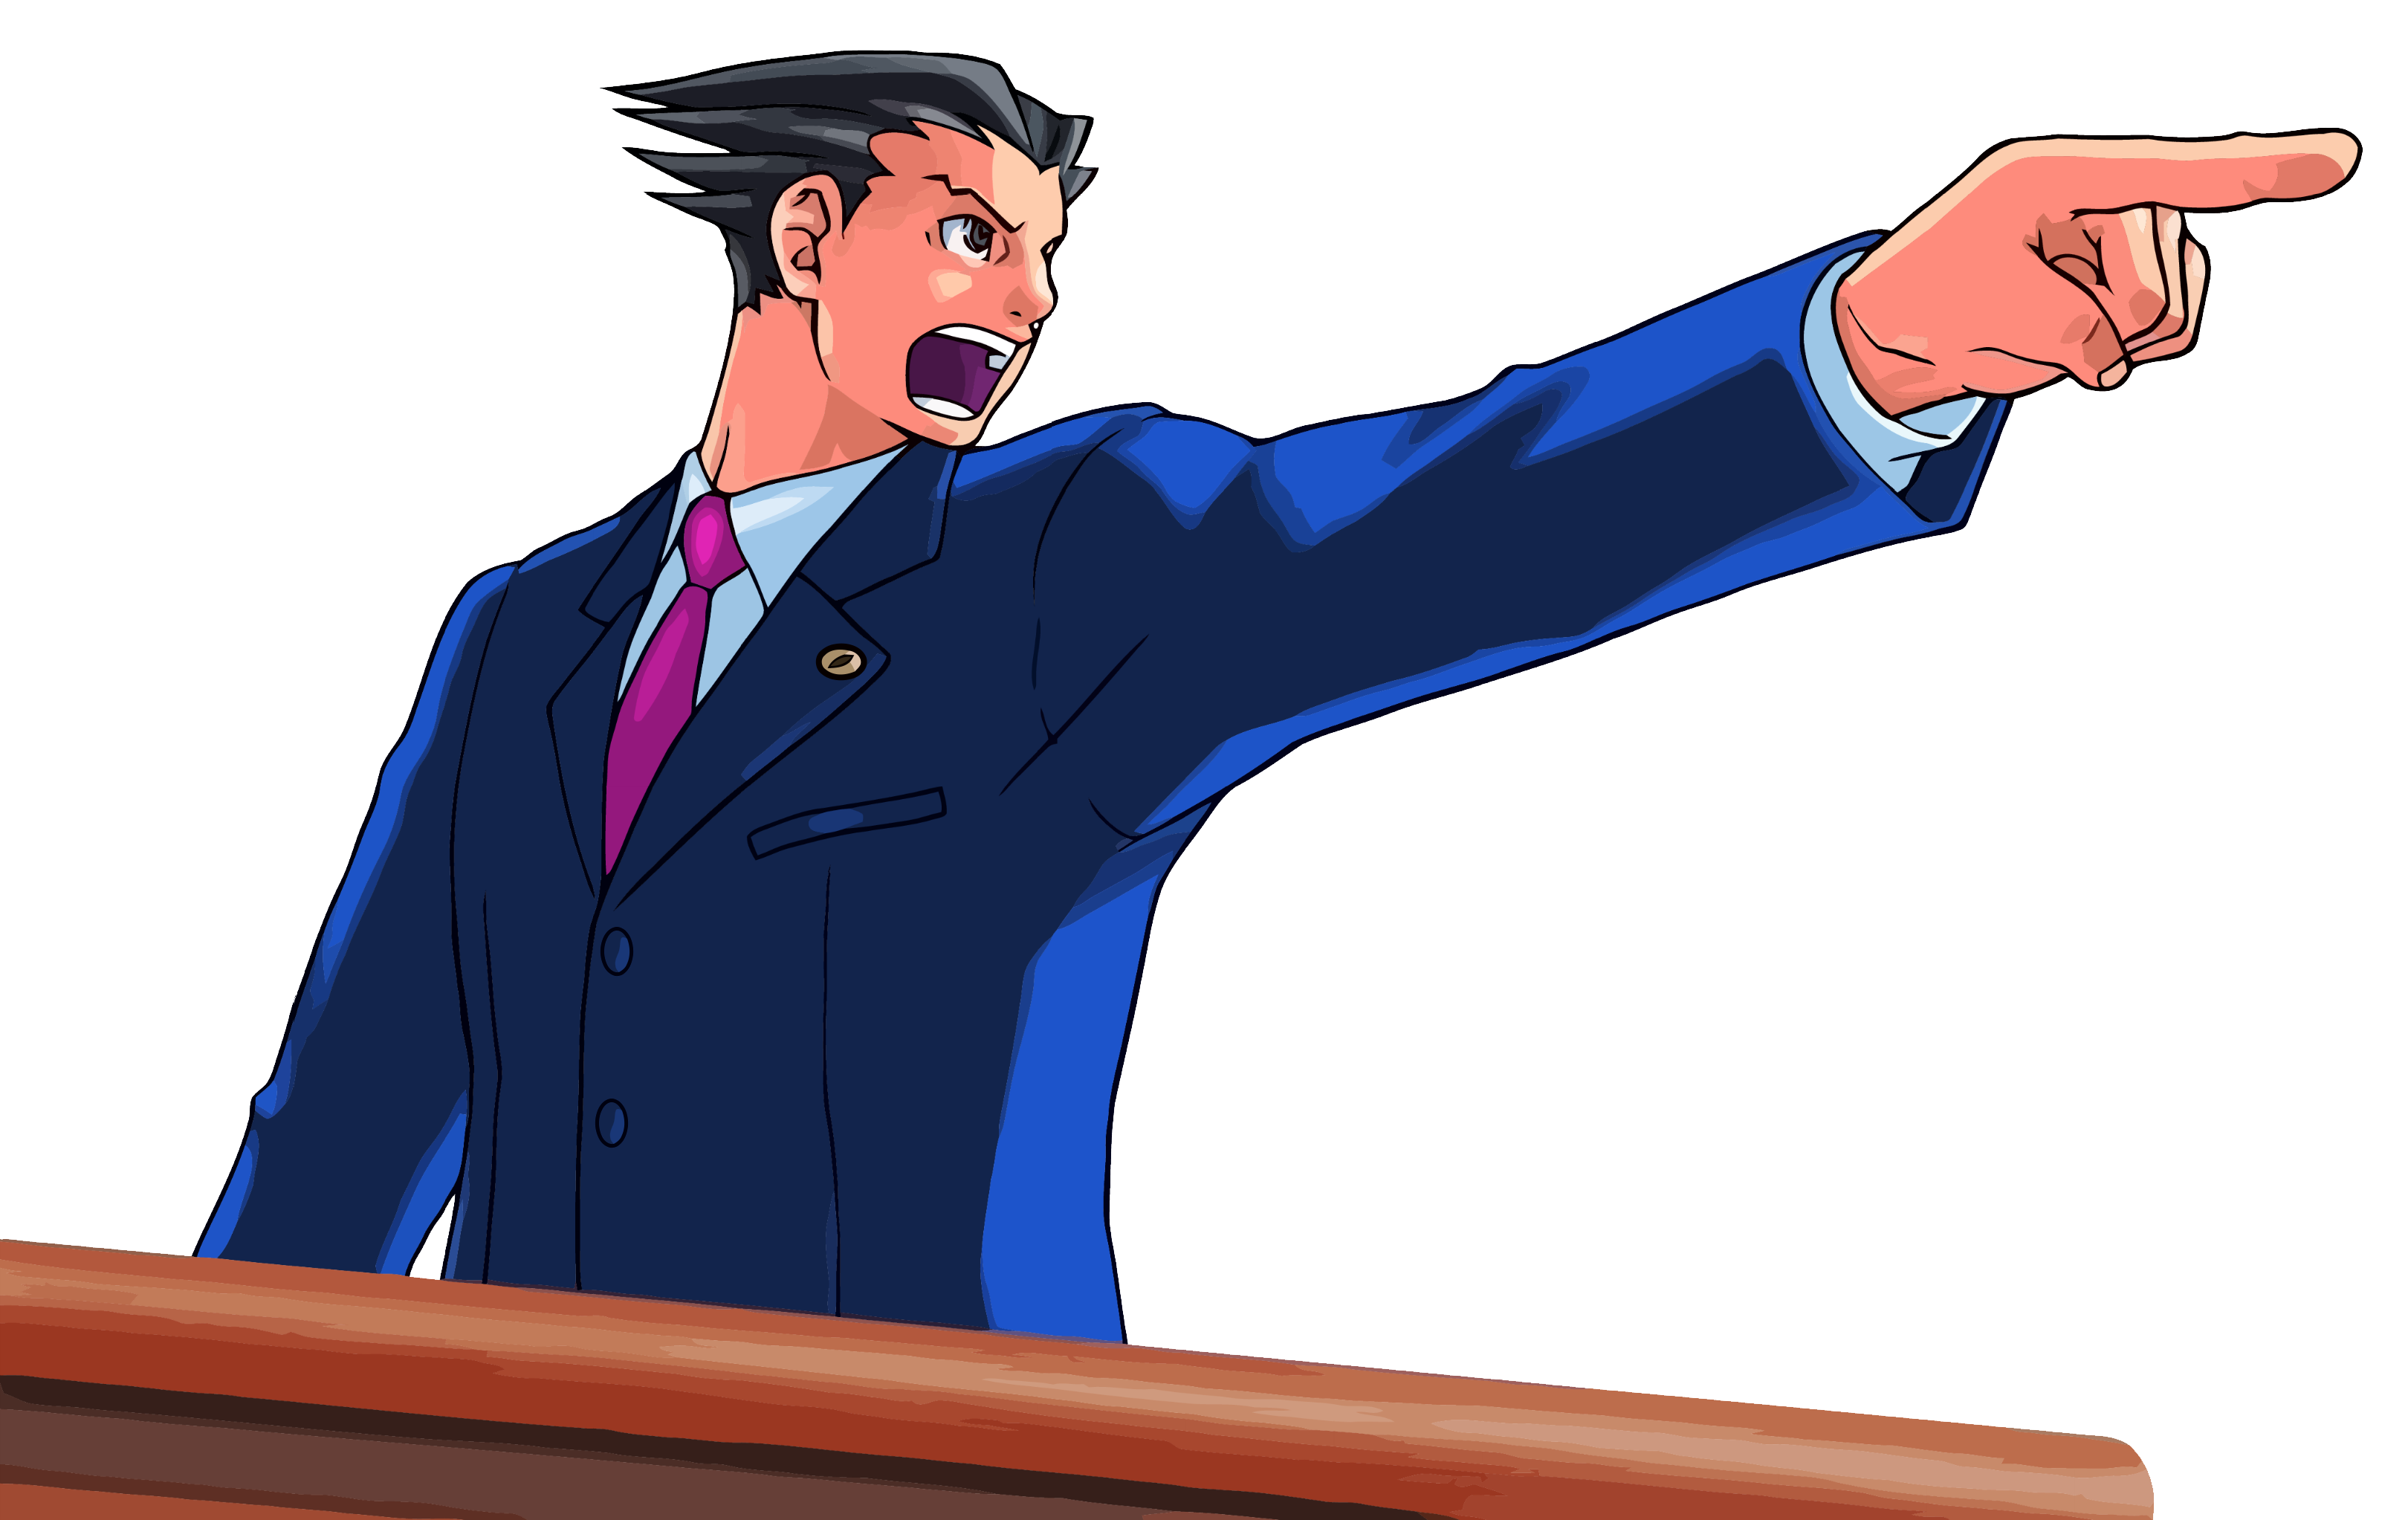 Download Ace Attorney Pointing Png Image For Free Phoenix Wright Attorneys Ace